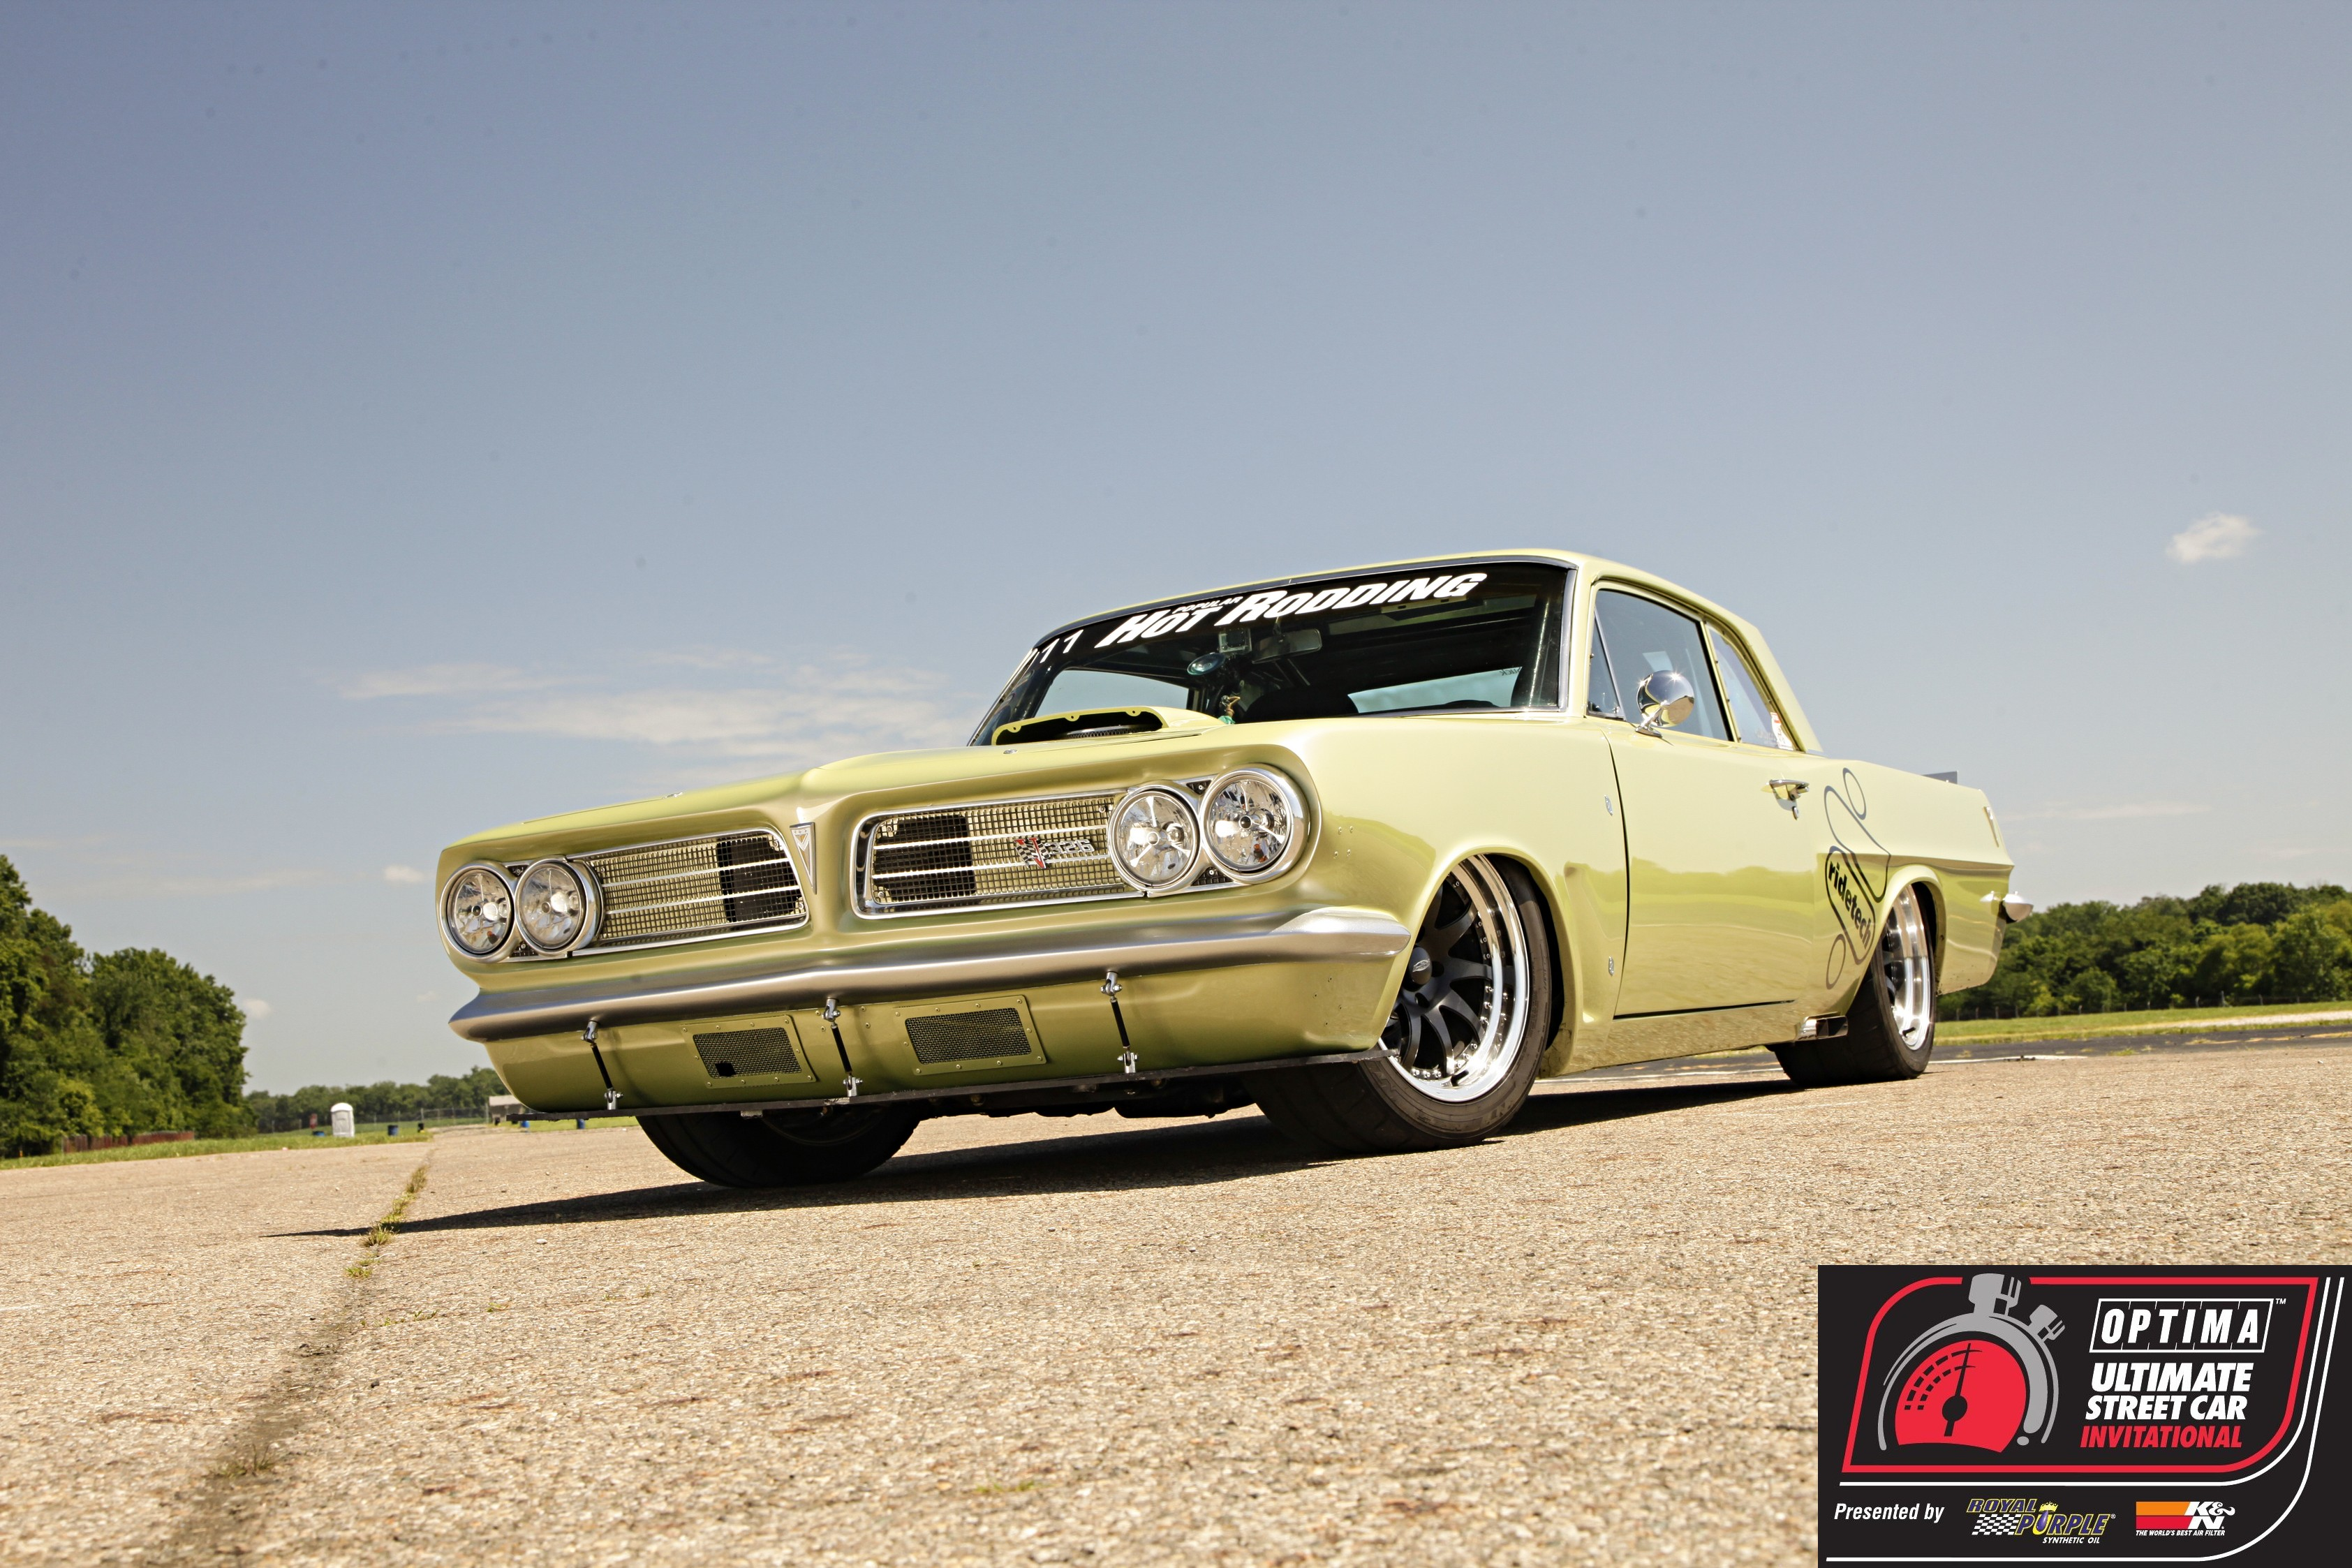 2013 OUSCI Preview- Damion Campbell's 1963 Pontiac LeMans